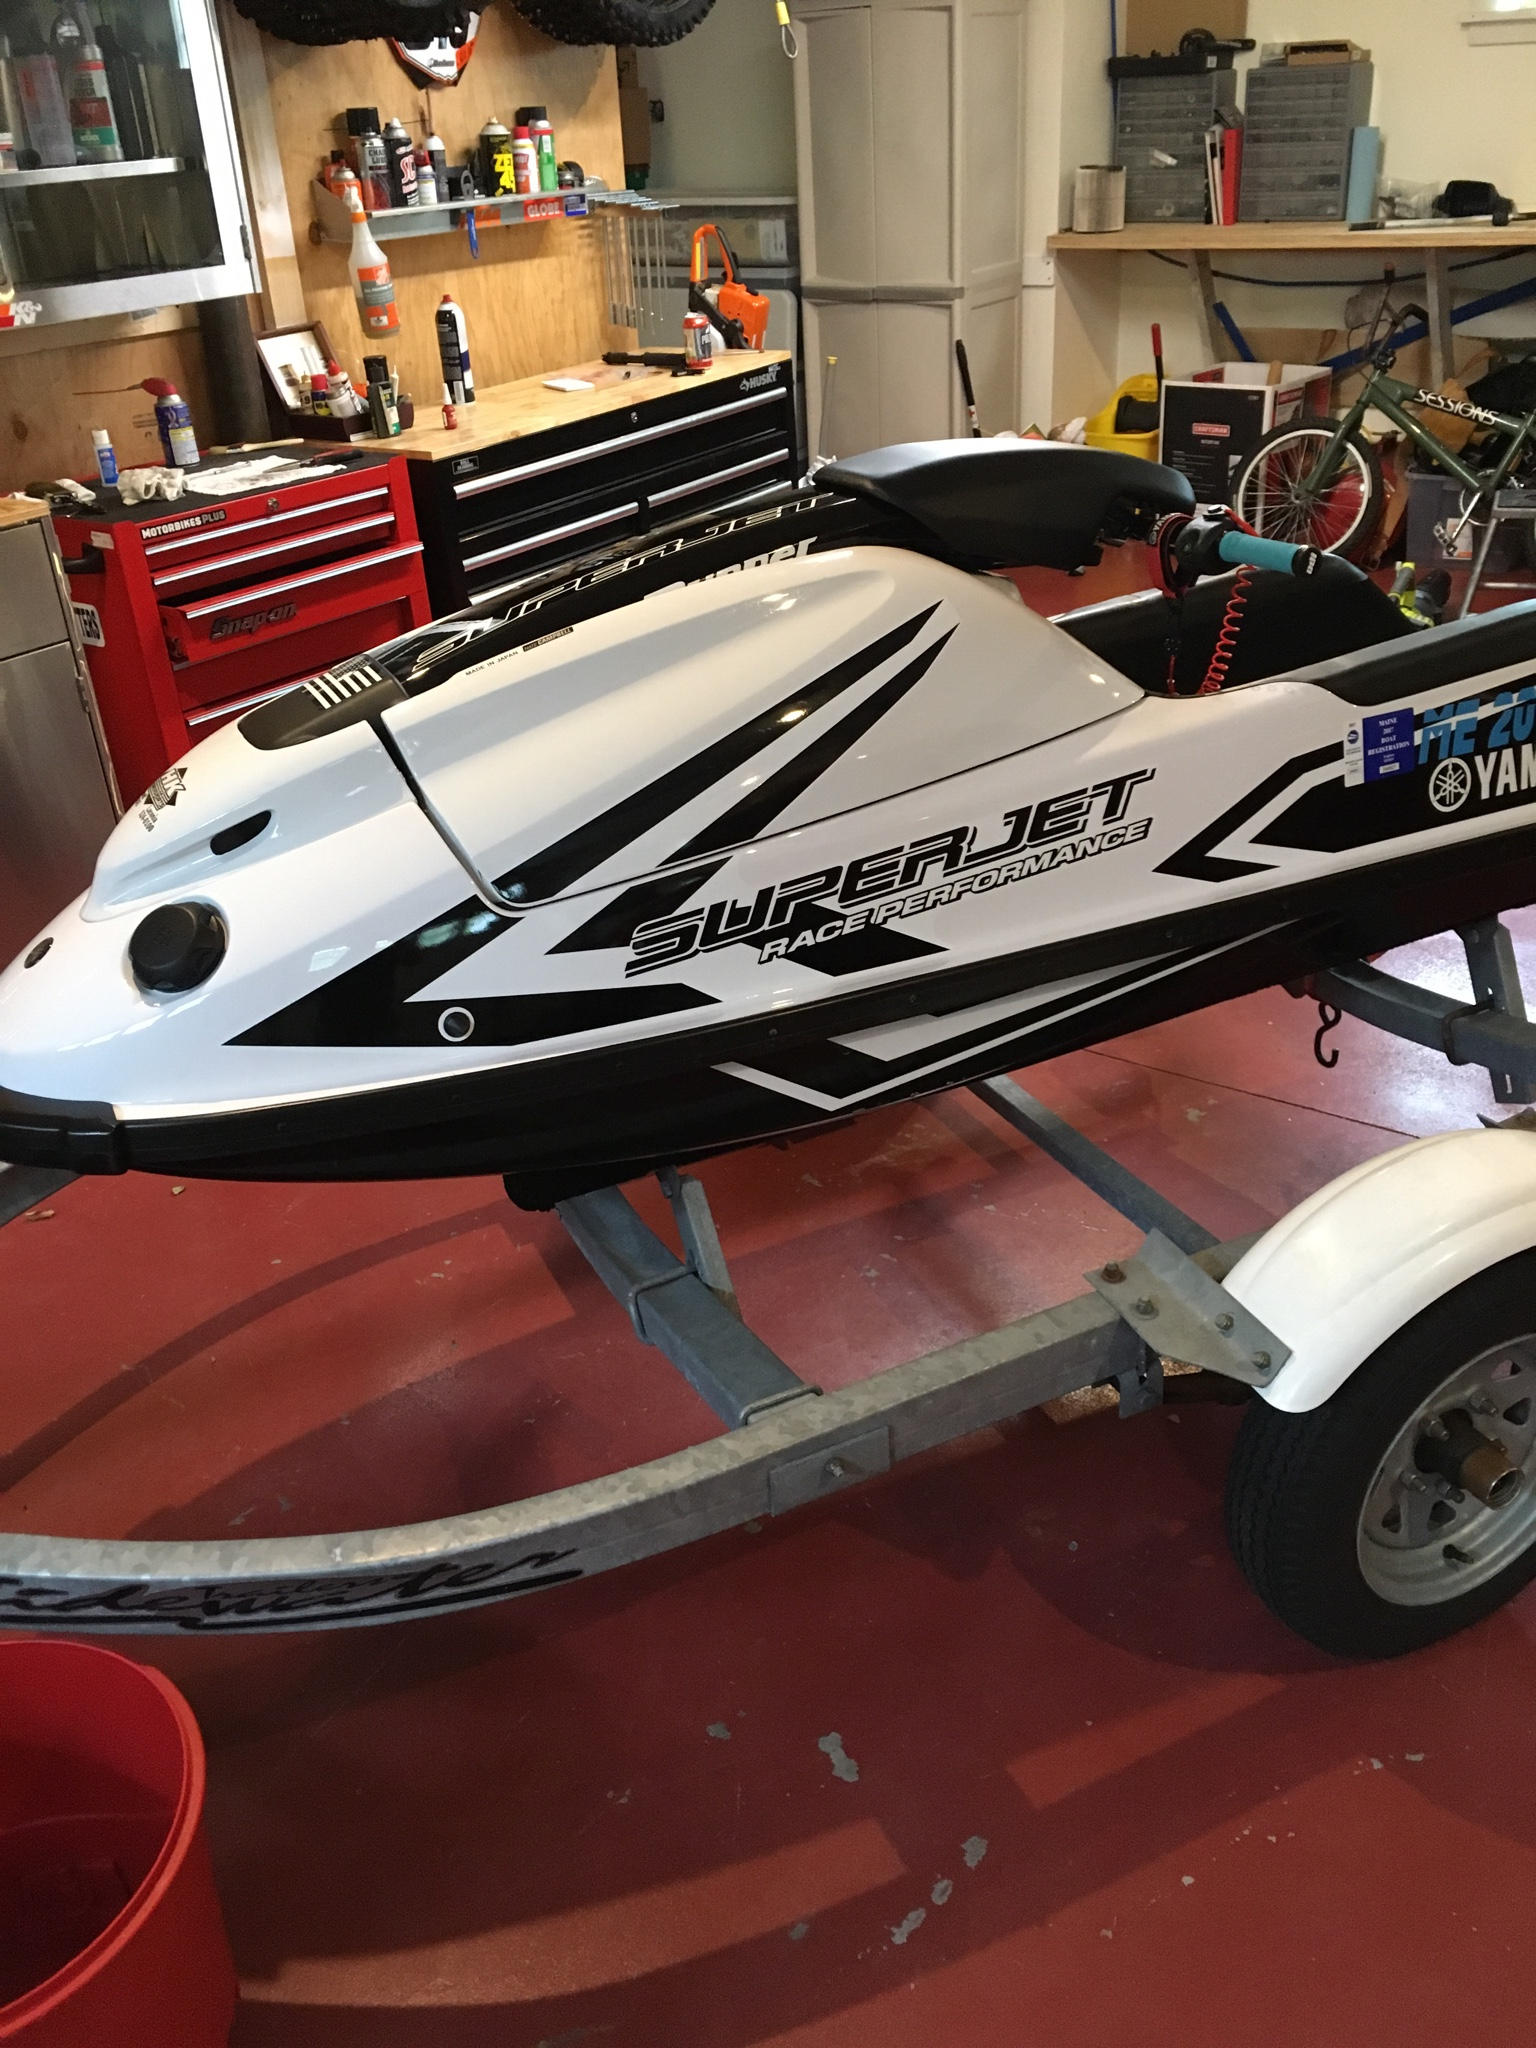 Used - 2017 superjet hull and pole/extras | X-H2o